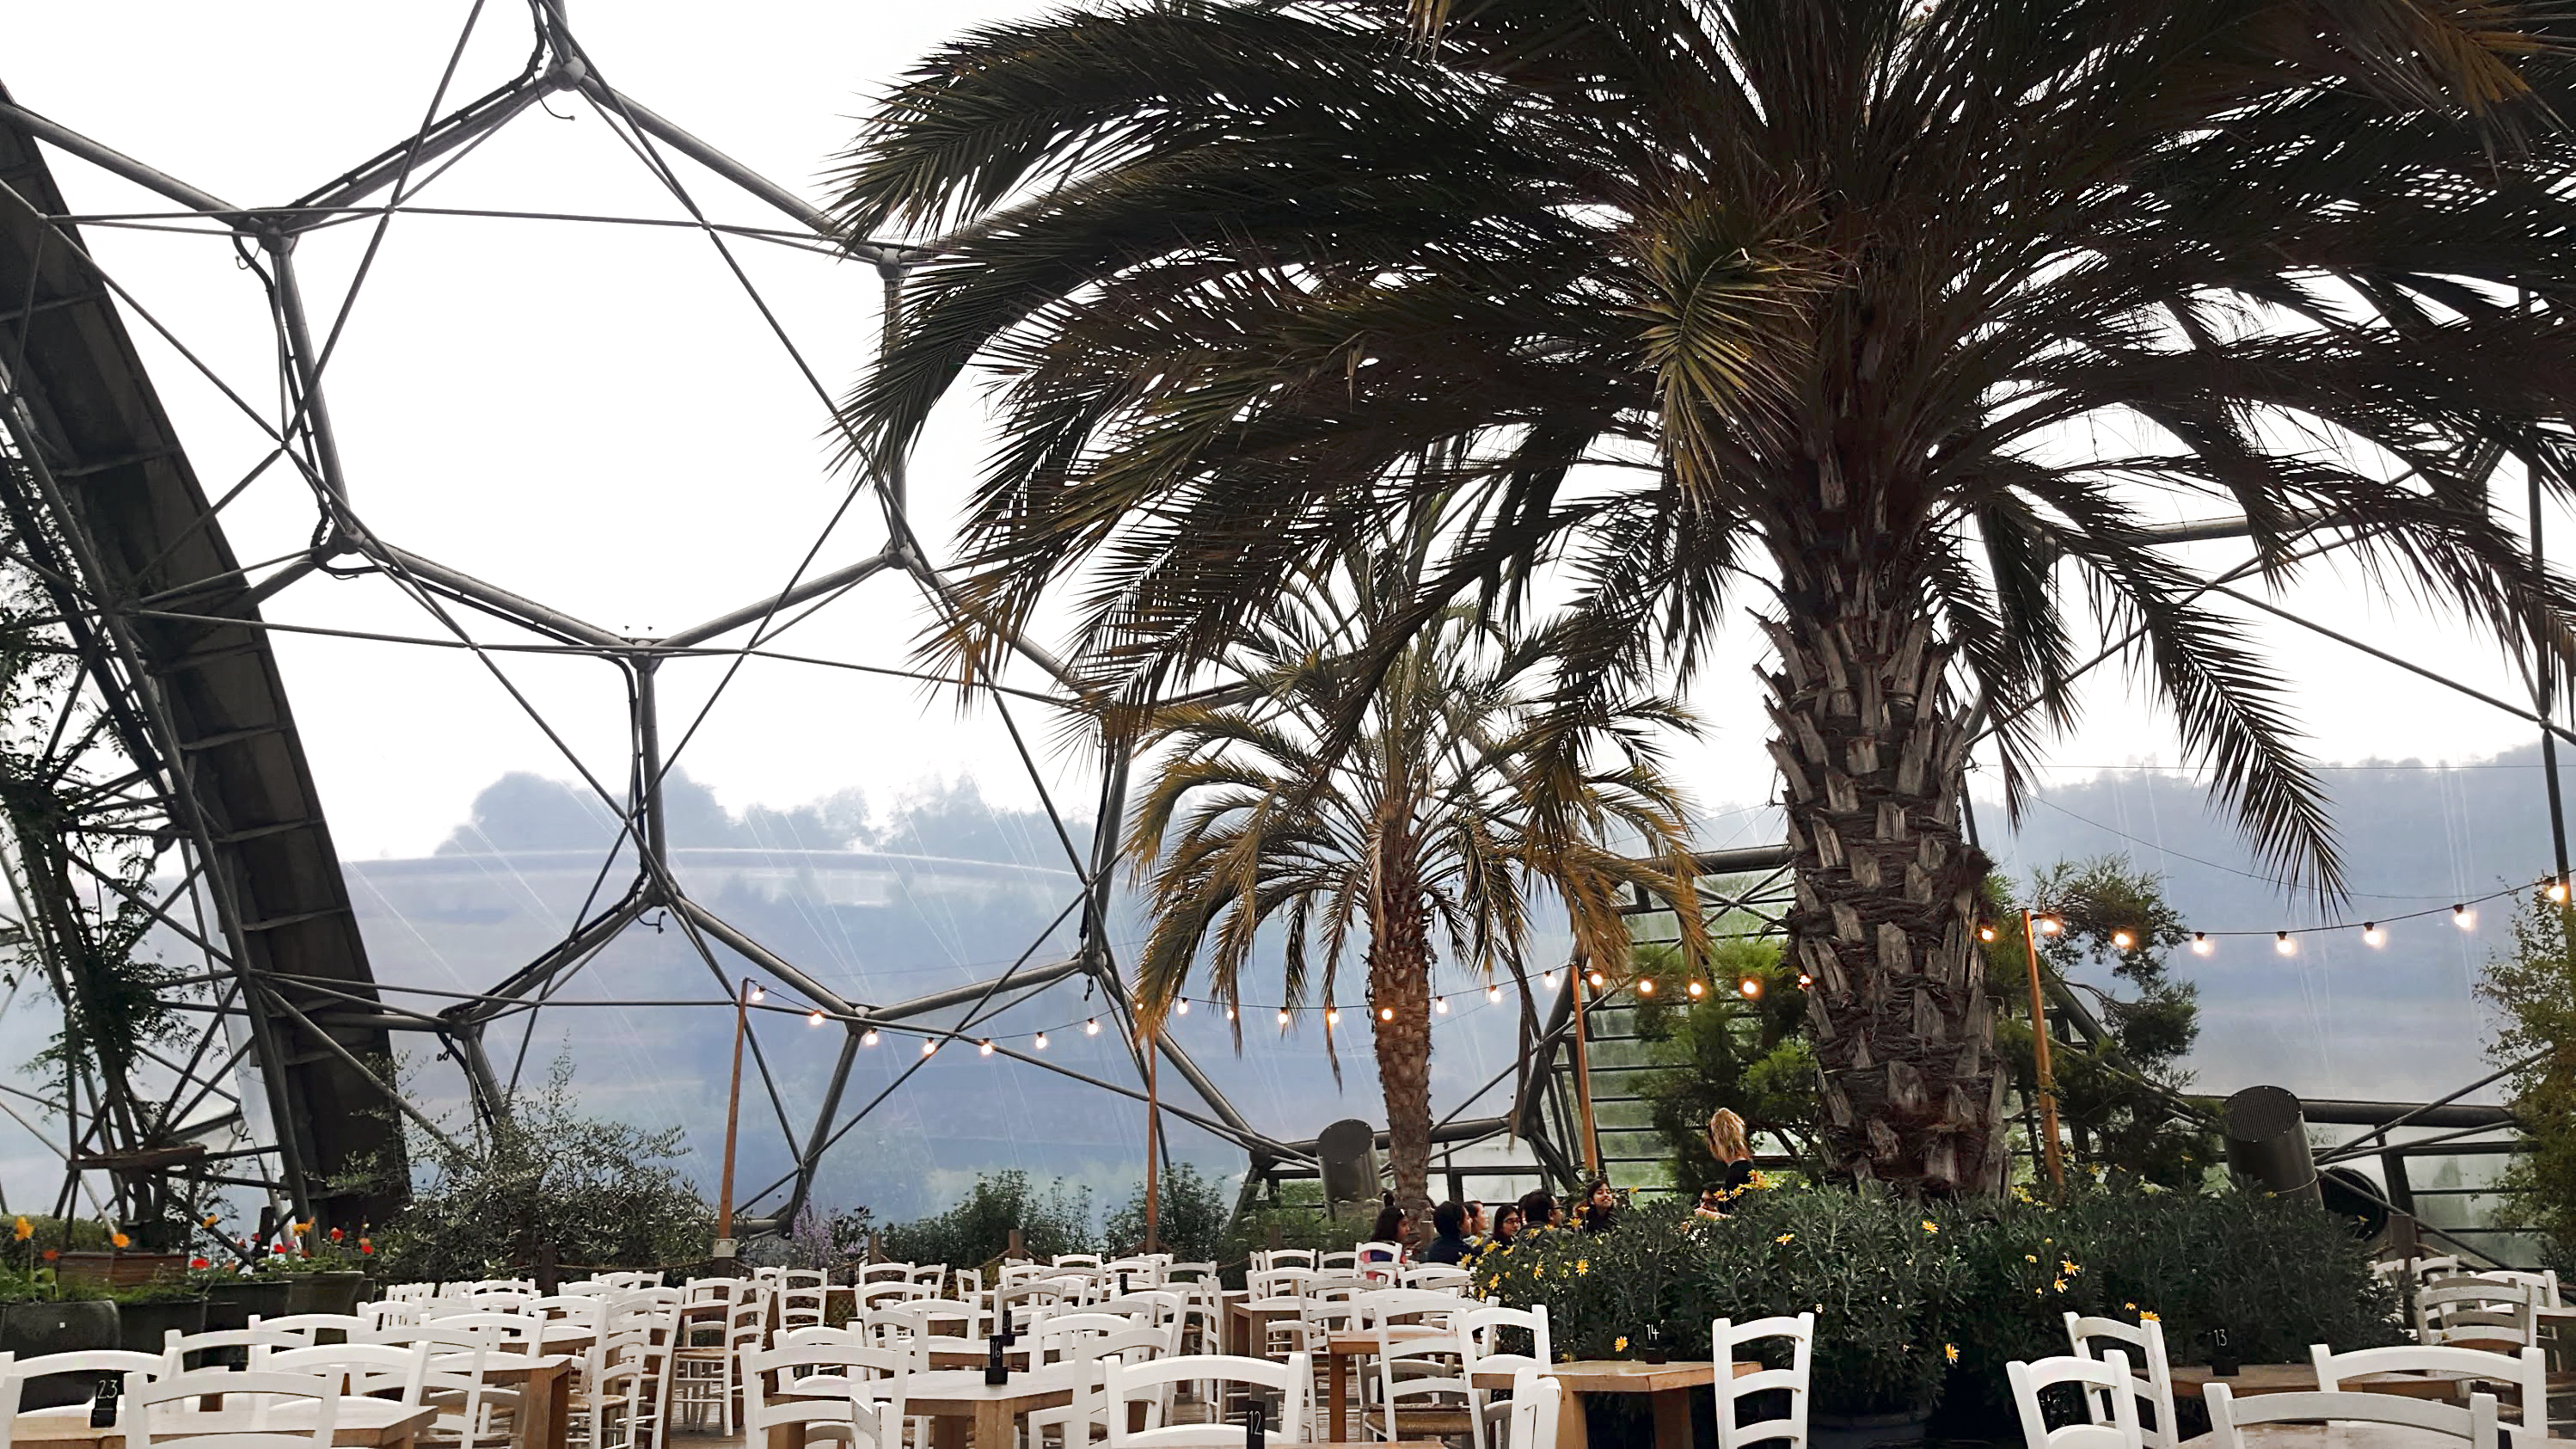 Dining Inside a Giant Terrarium: Med-Terrace Restaurant Experience at the Eden Project